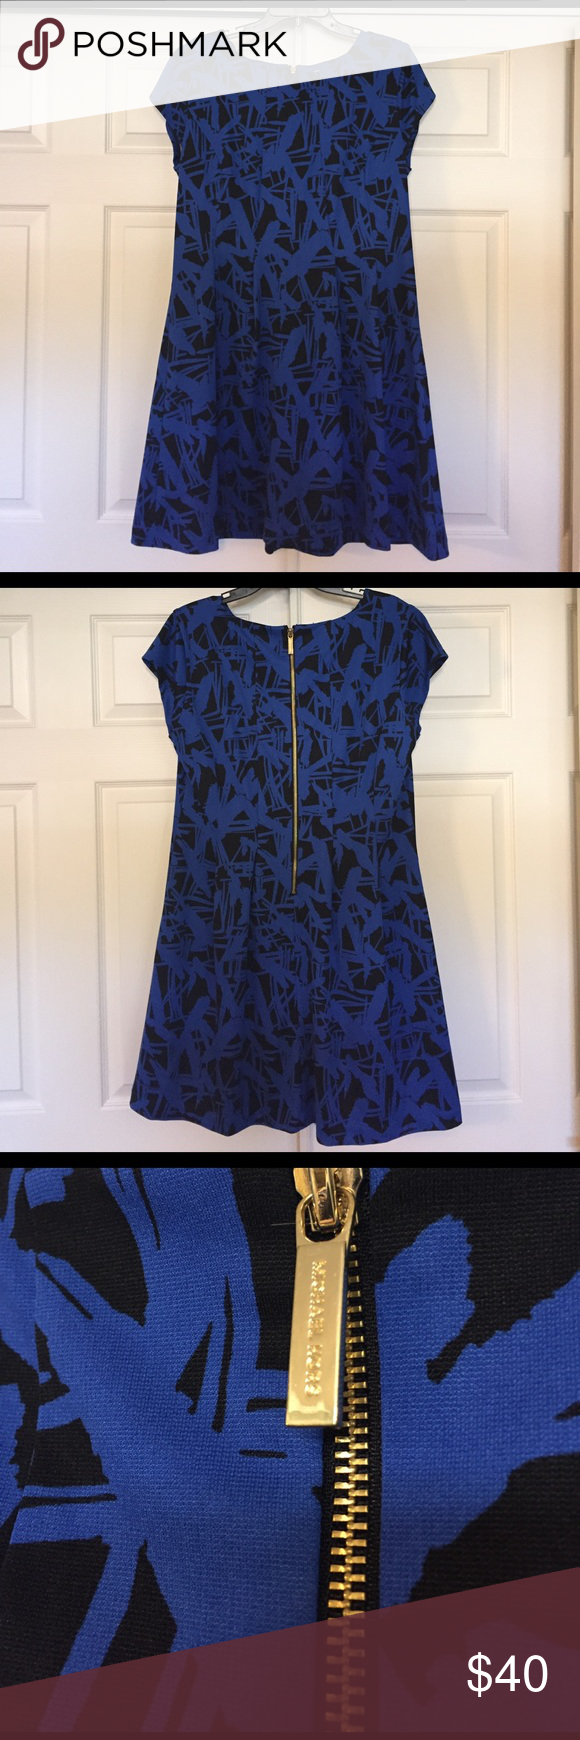 """EUC Michael Kors skater dress Excellent used condition, worn once. Blue and black with gold zipper. Stretchy material, true to size. 37"""" long, 21"""" across armpit to armpit. Royal blue and black abstract print. Great for work to date night. Michael Kors Dresses"""